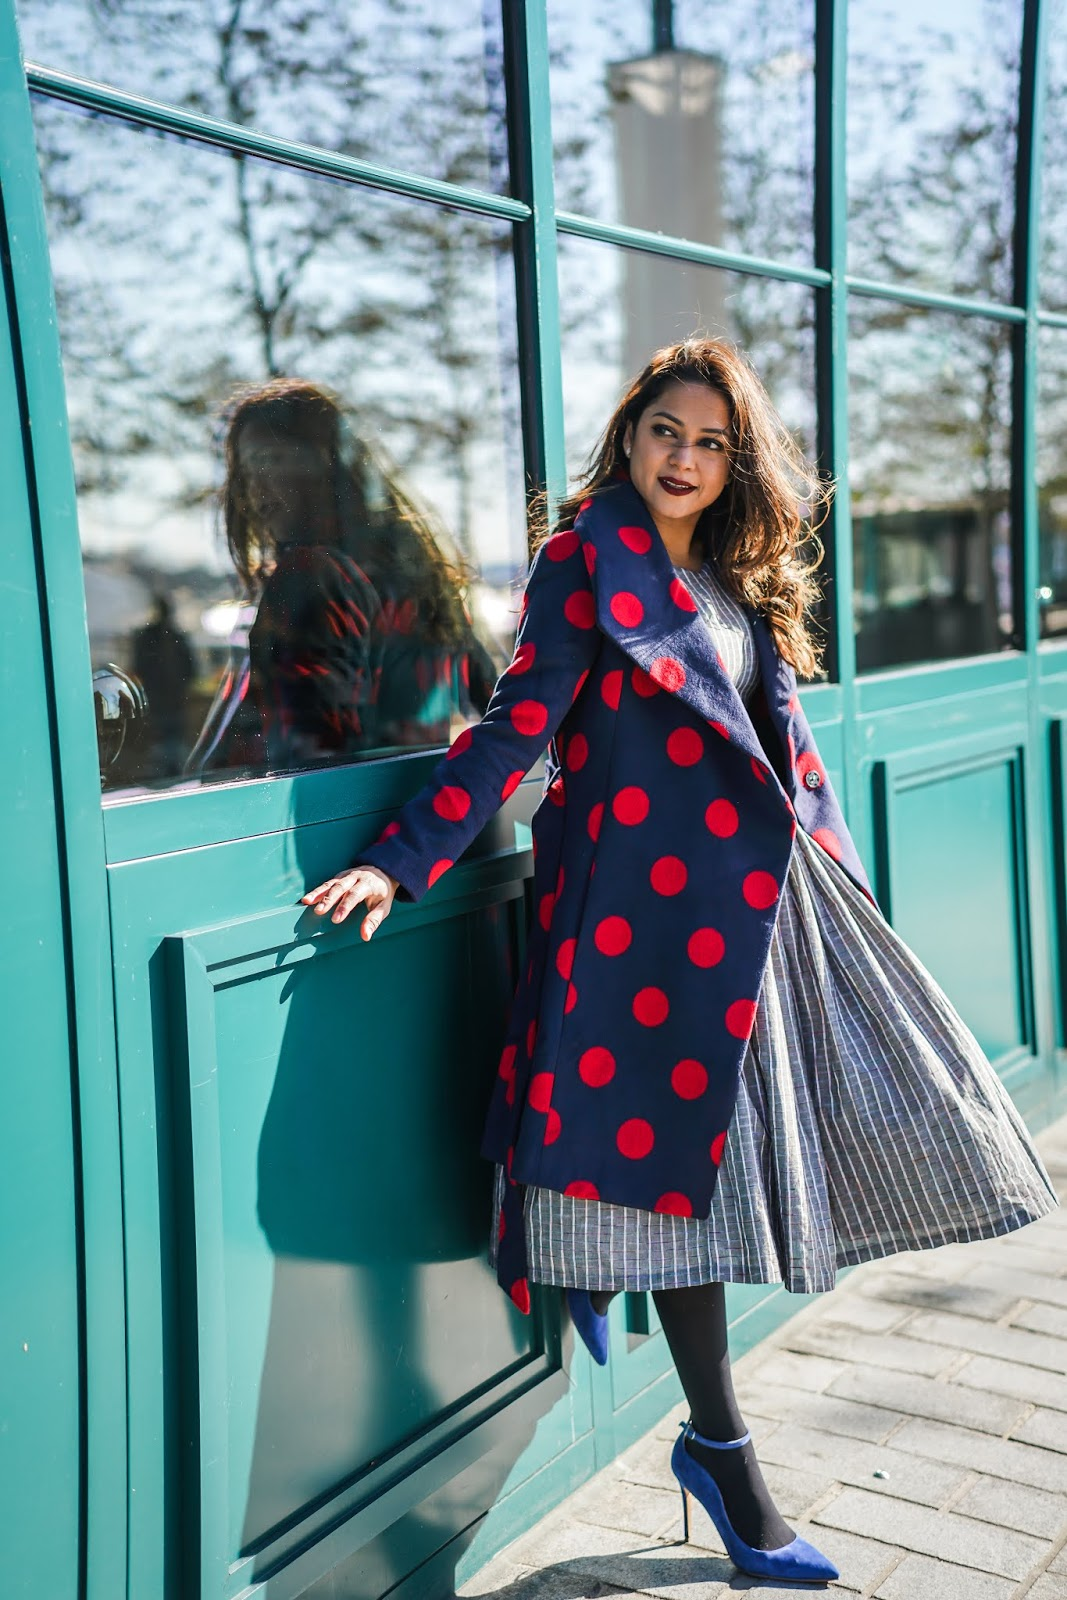 Modcloth flared dress, polka dot jacket, vince camuto pumps, sparkly sweater, holidat sweater, hostess outfit, fashion, vintage look, myriad musings